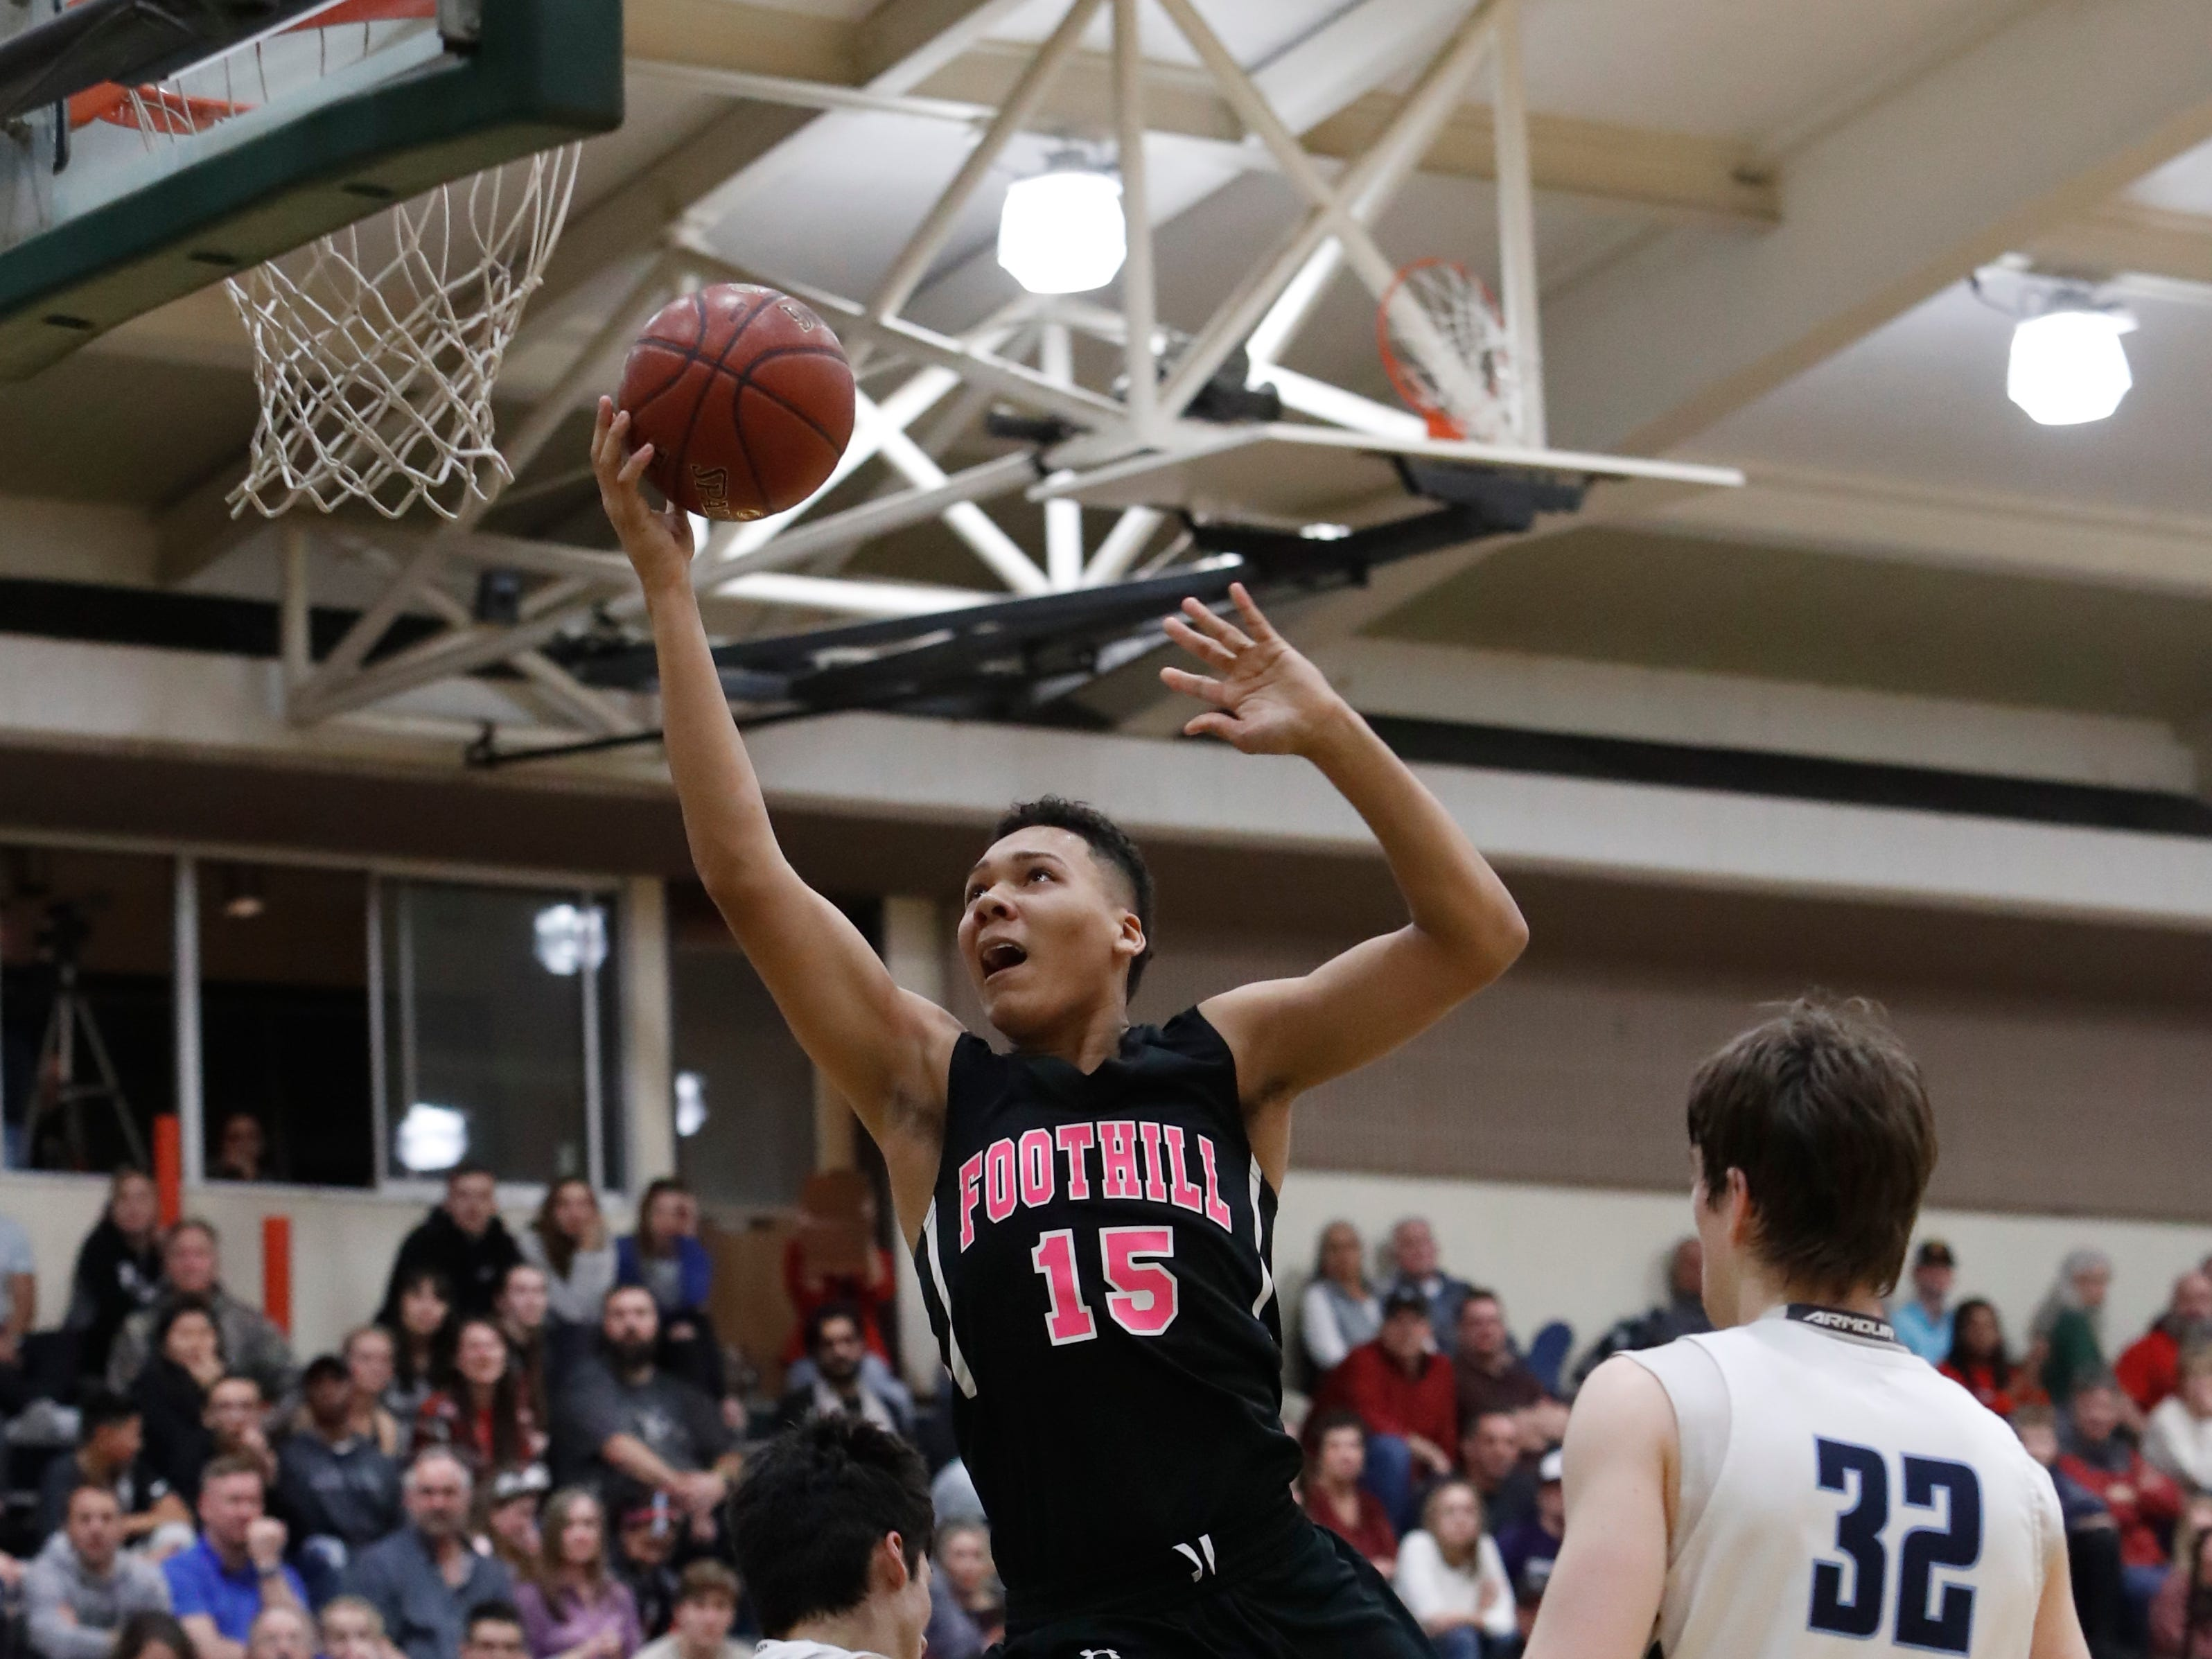 Foothill's Josiah Hutt attempts a layup during Pleasant Valley's 43-41 win over the Cougars in the Division III Northern Section championship at Shasta College on Saturday, Feb. 23.